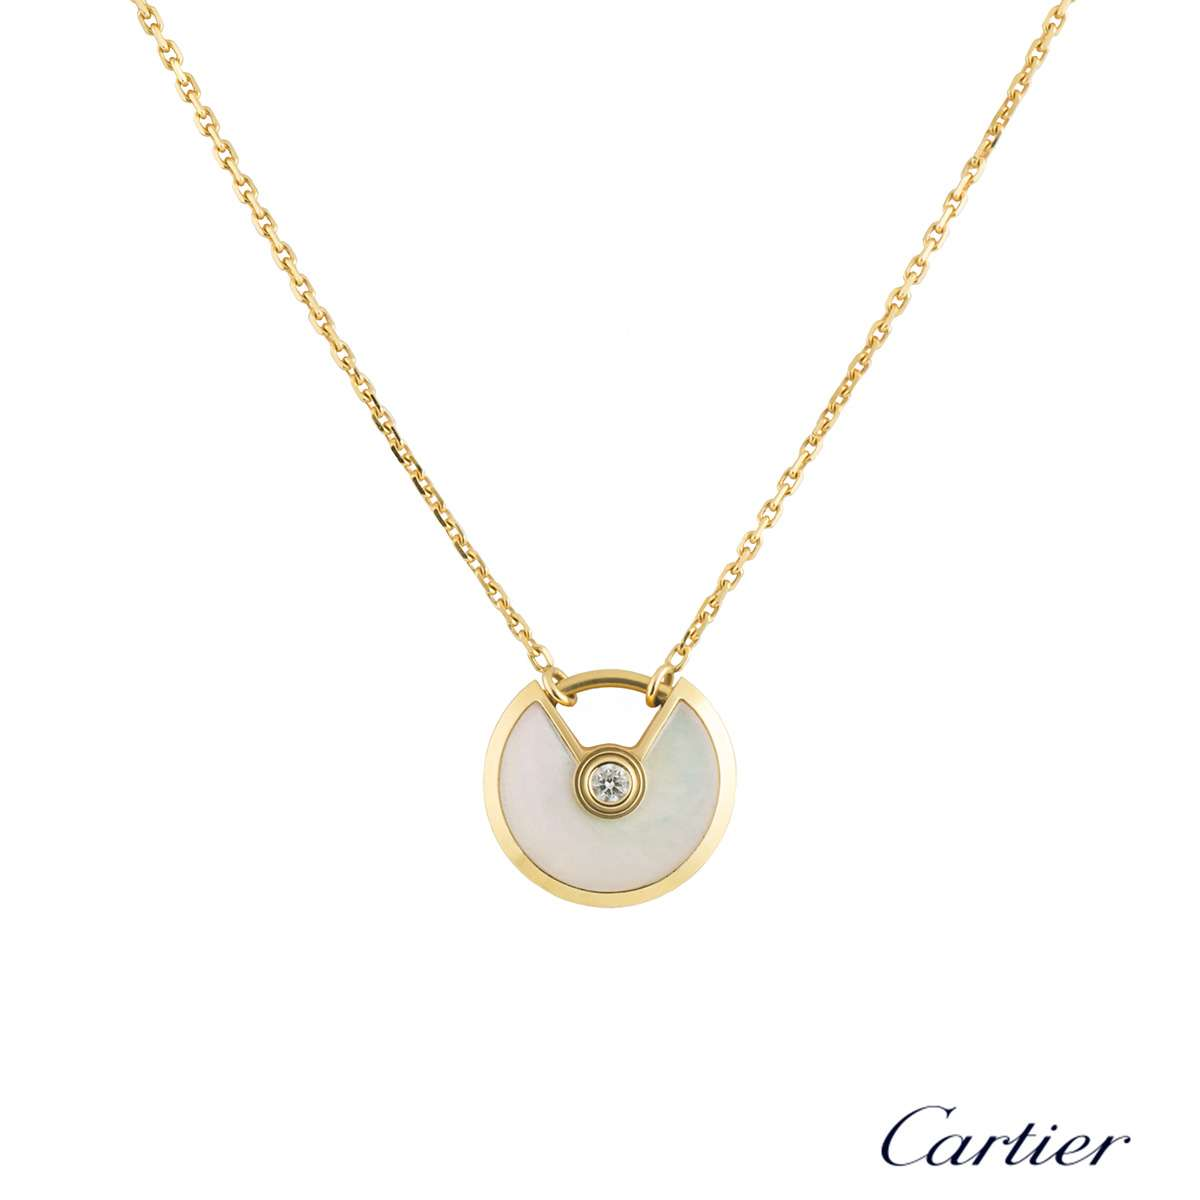 Cartier Amulette De Cartier Necklace